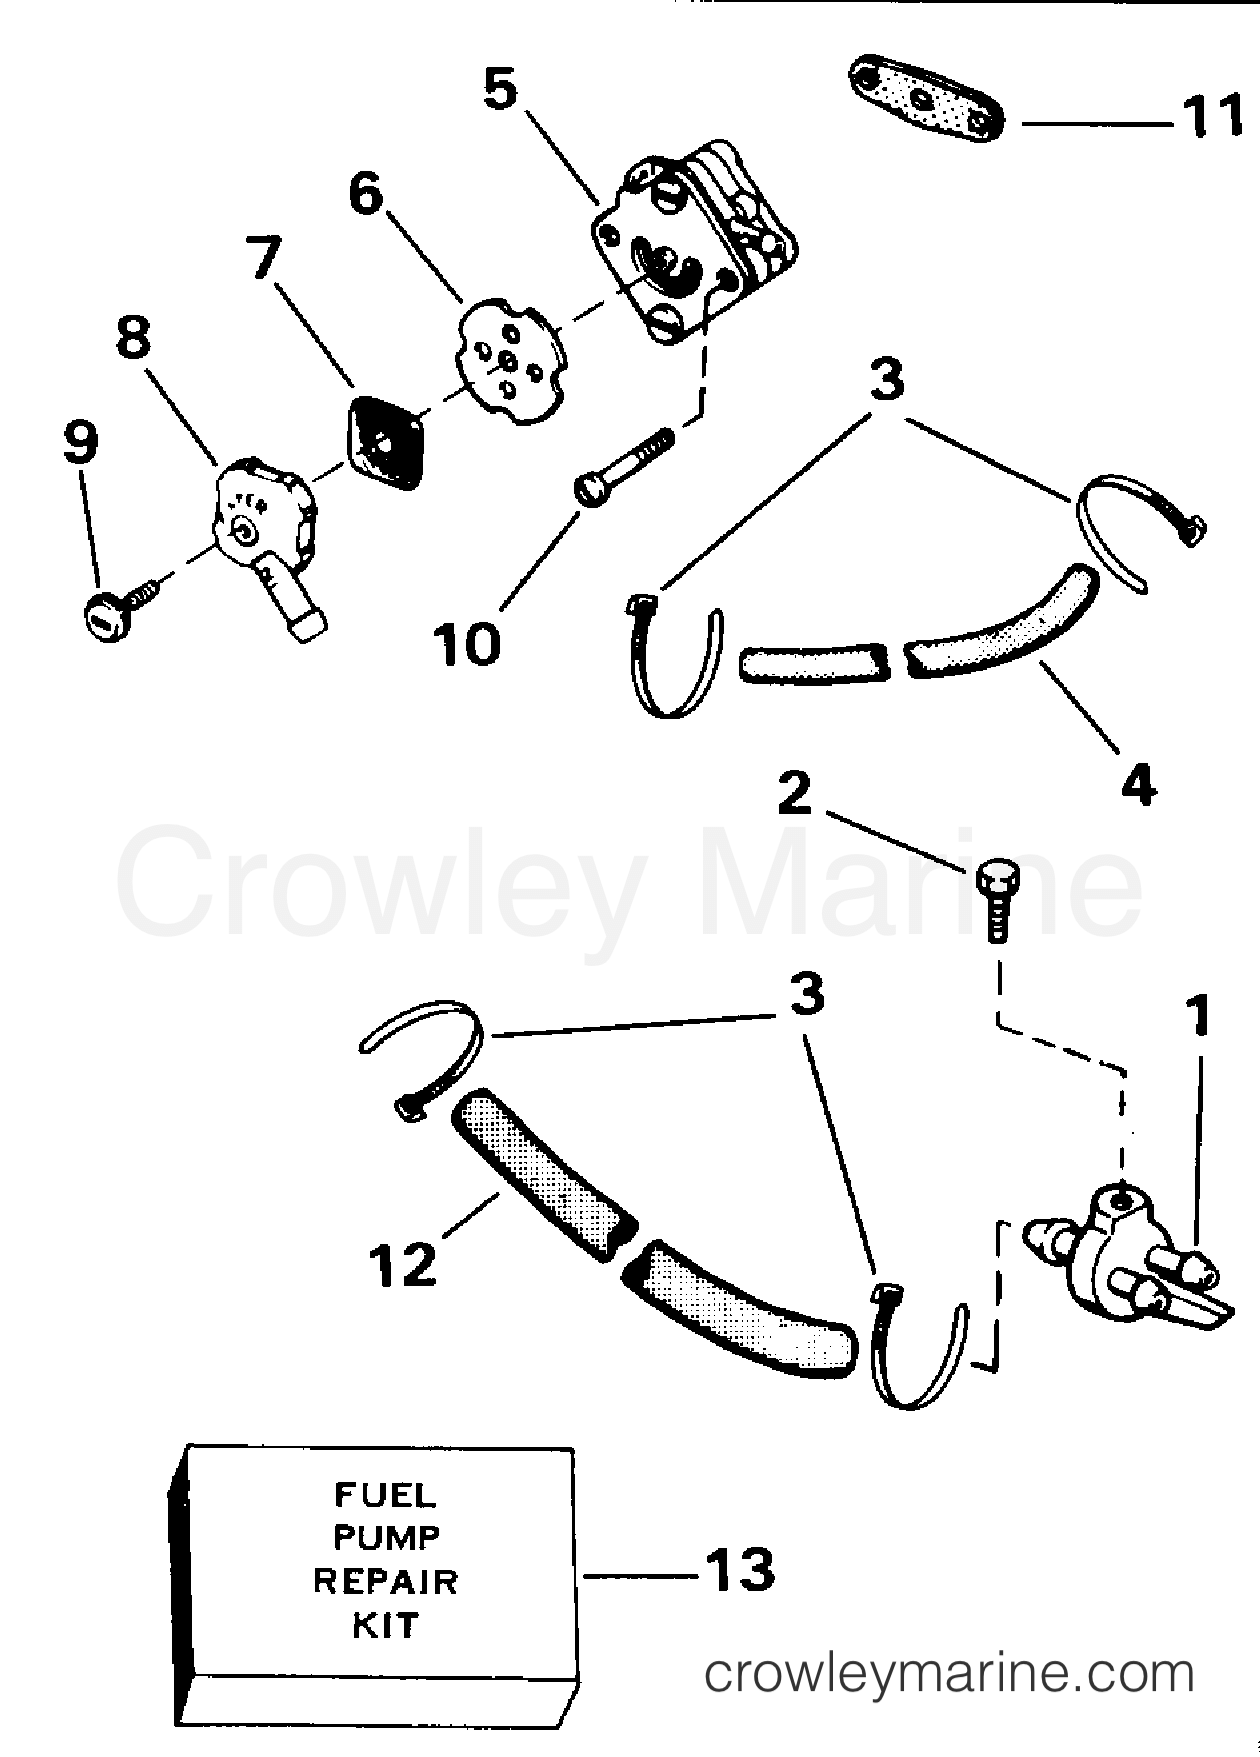 hight resolution of 1991 evinrude outboards 4 e4reia fuel pump section